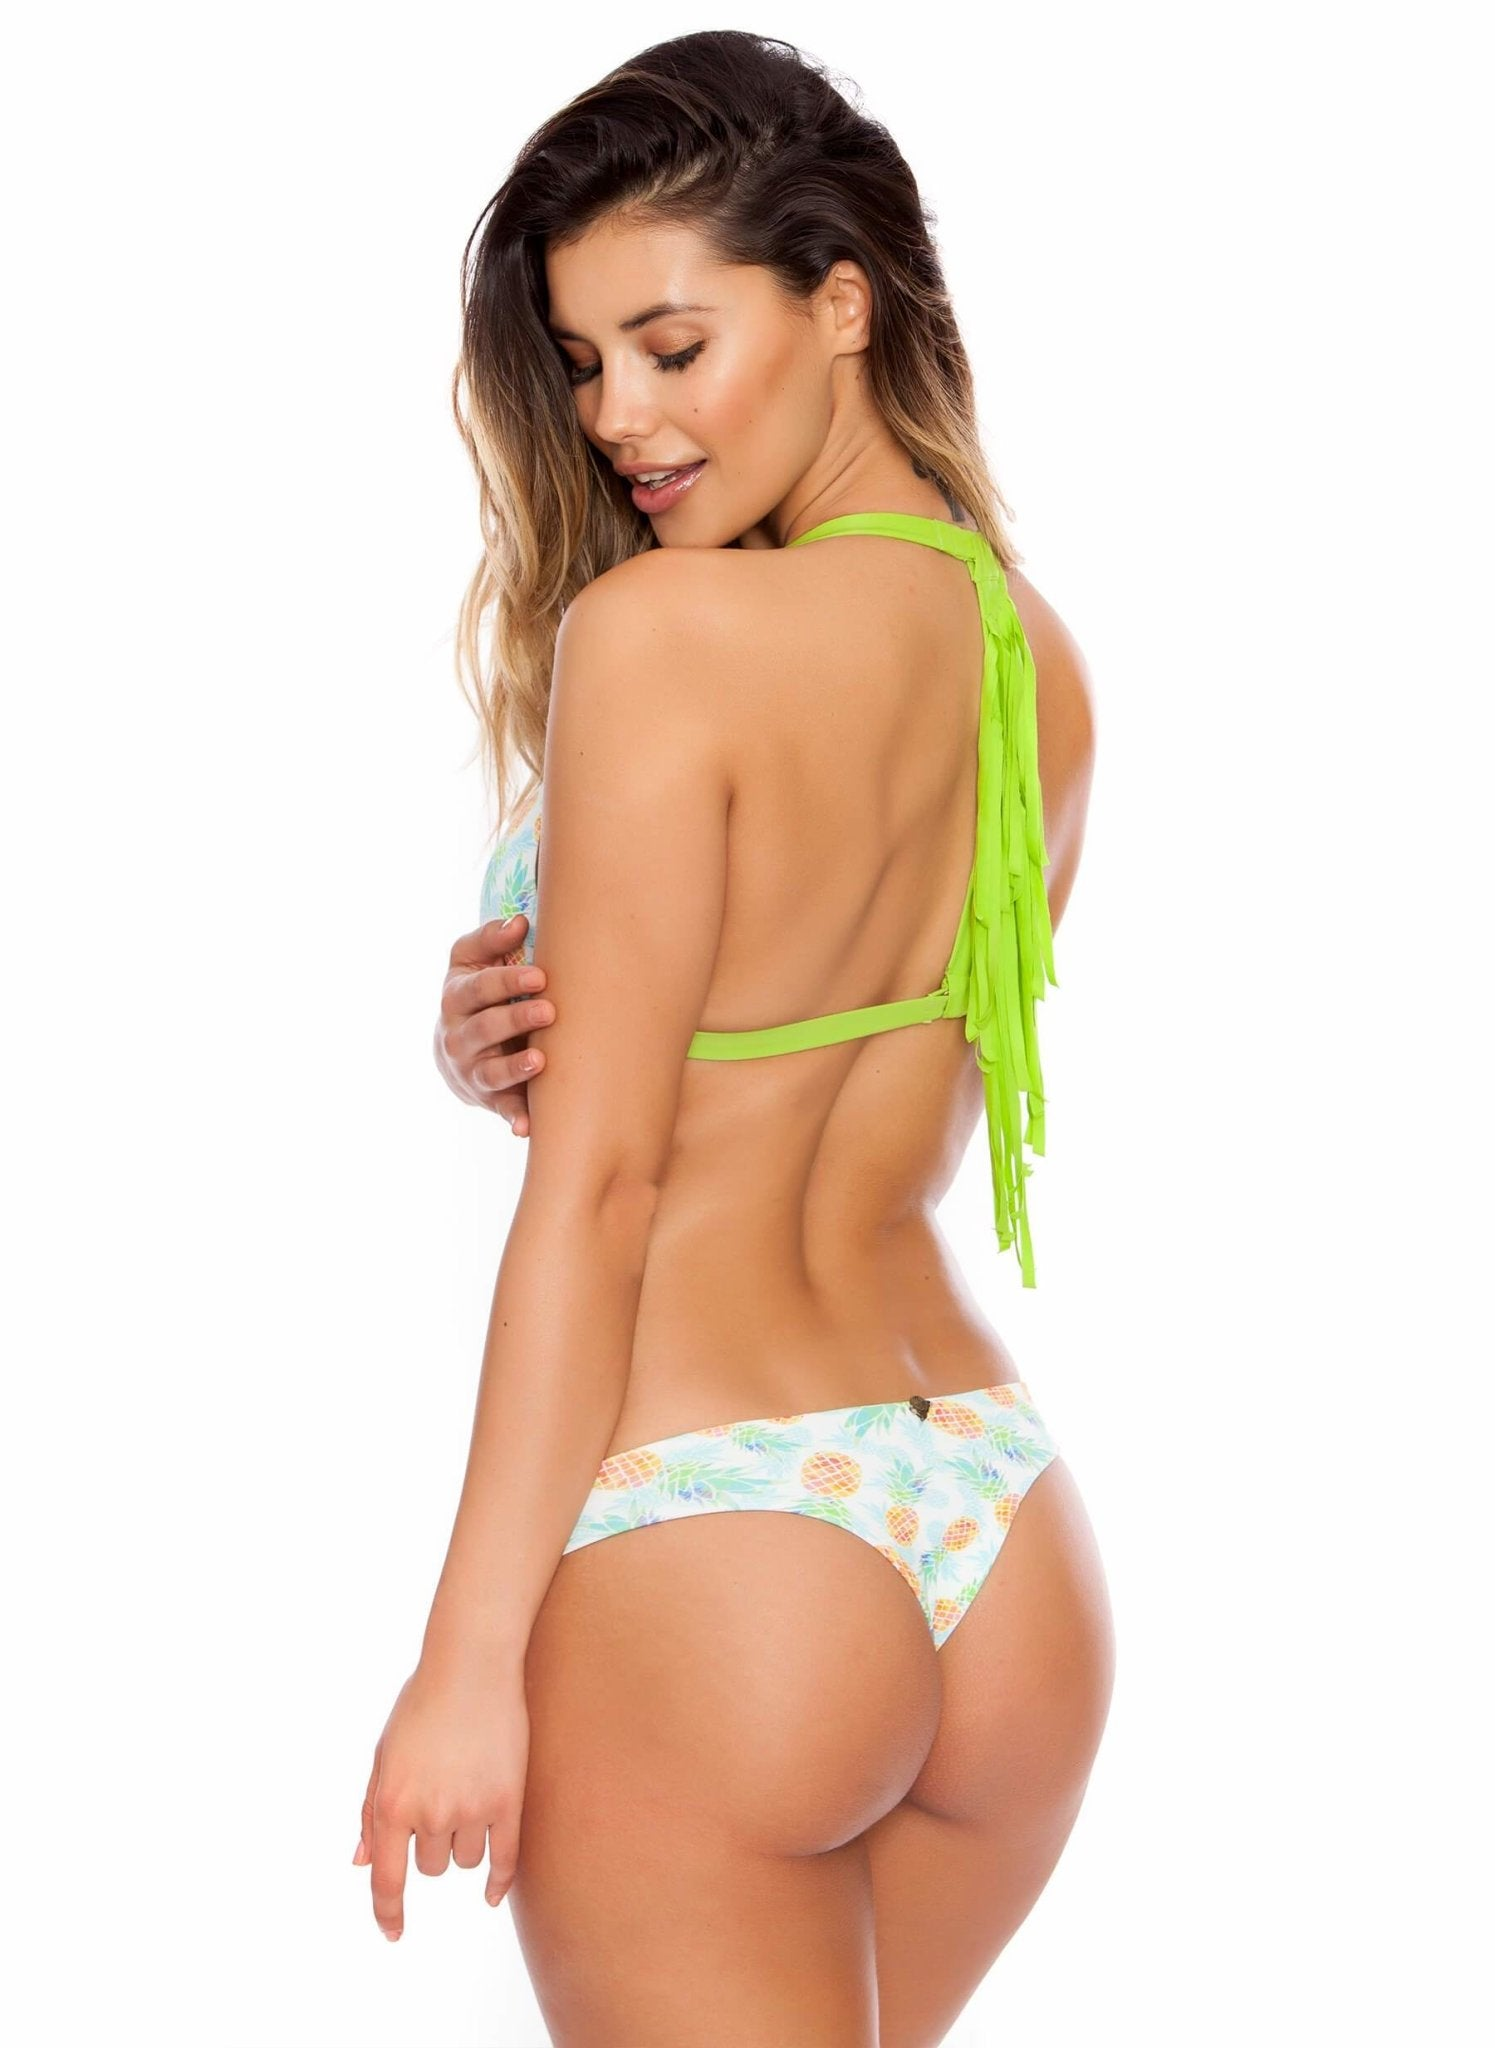 Salty n' Sassy - Pineapple Me Crazy Brazilian Bikini Bottom - Salty Mermaid Swim